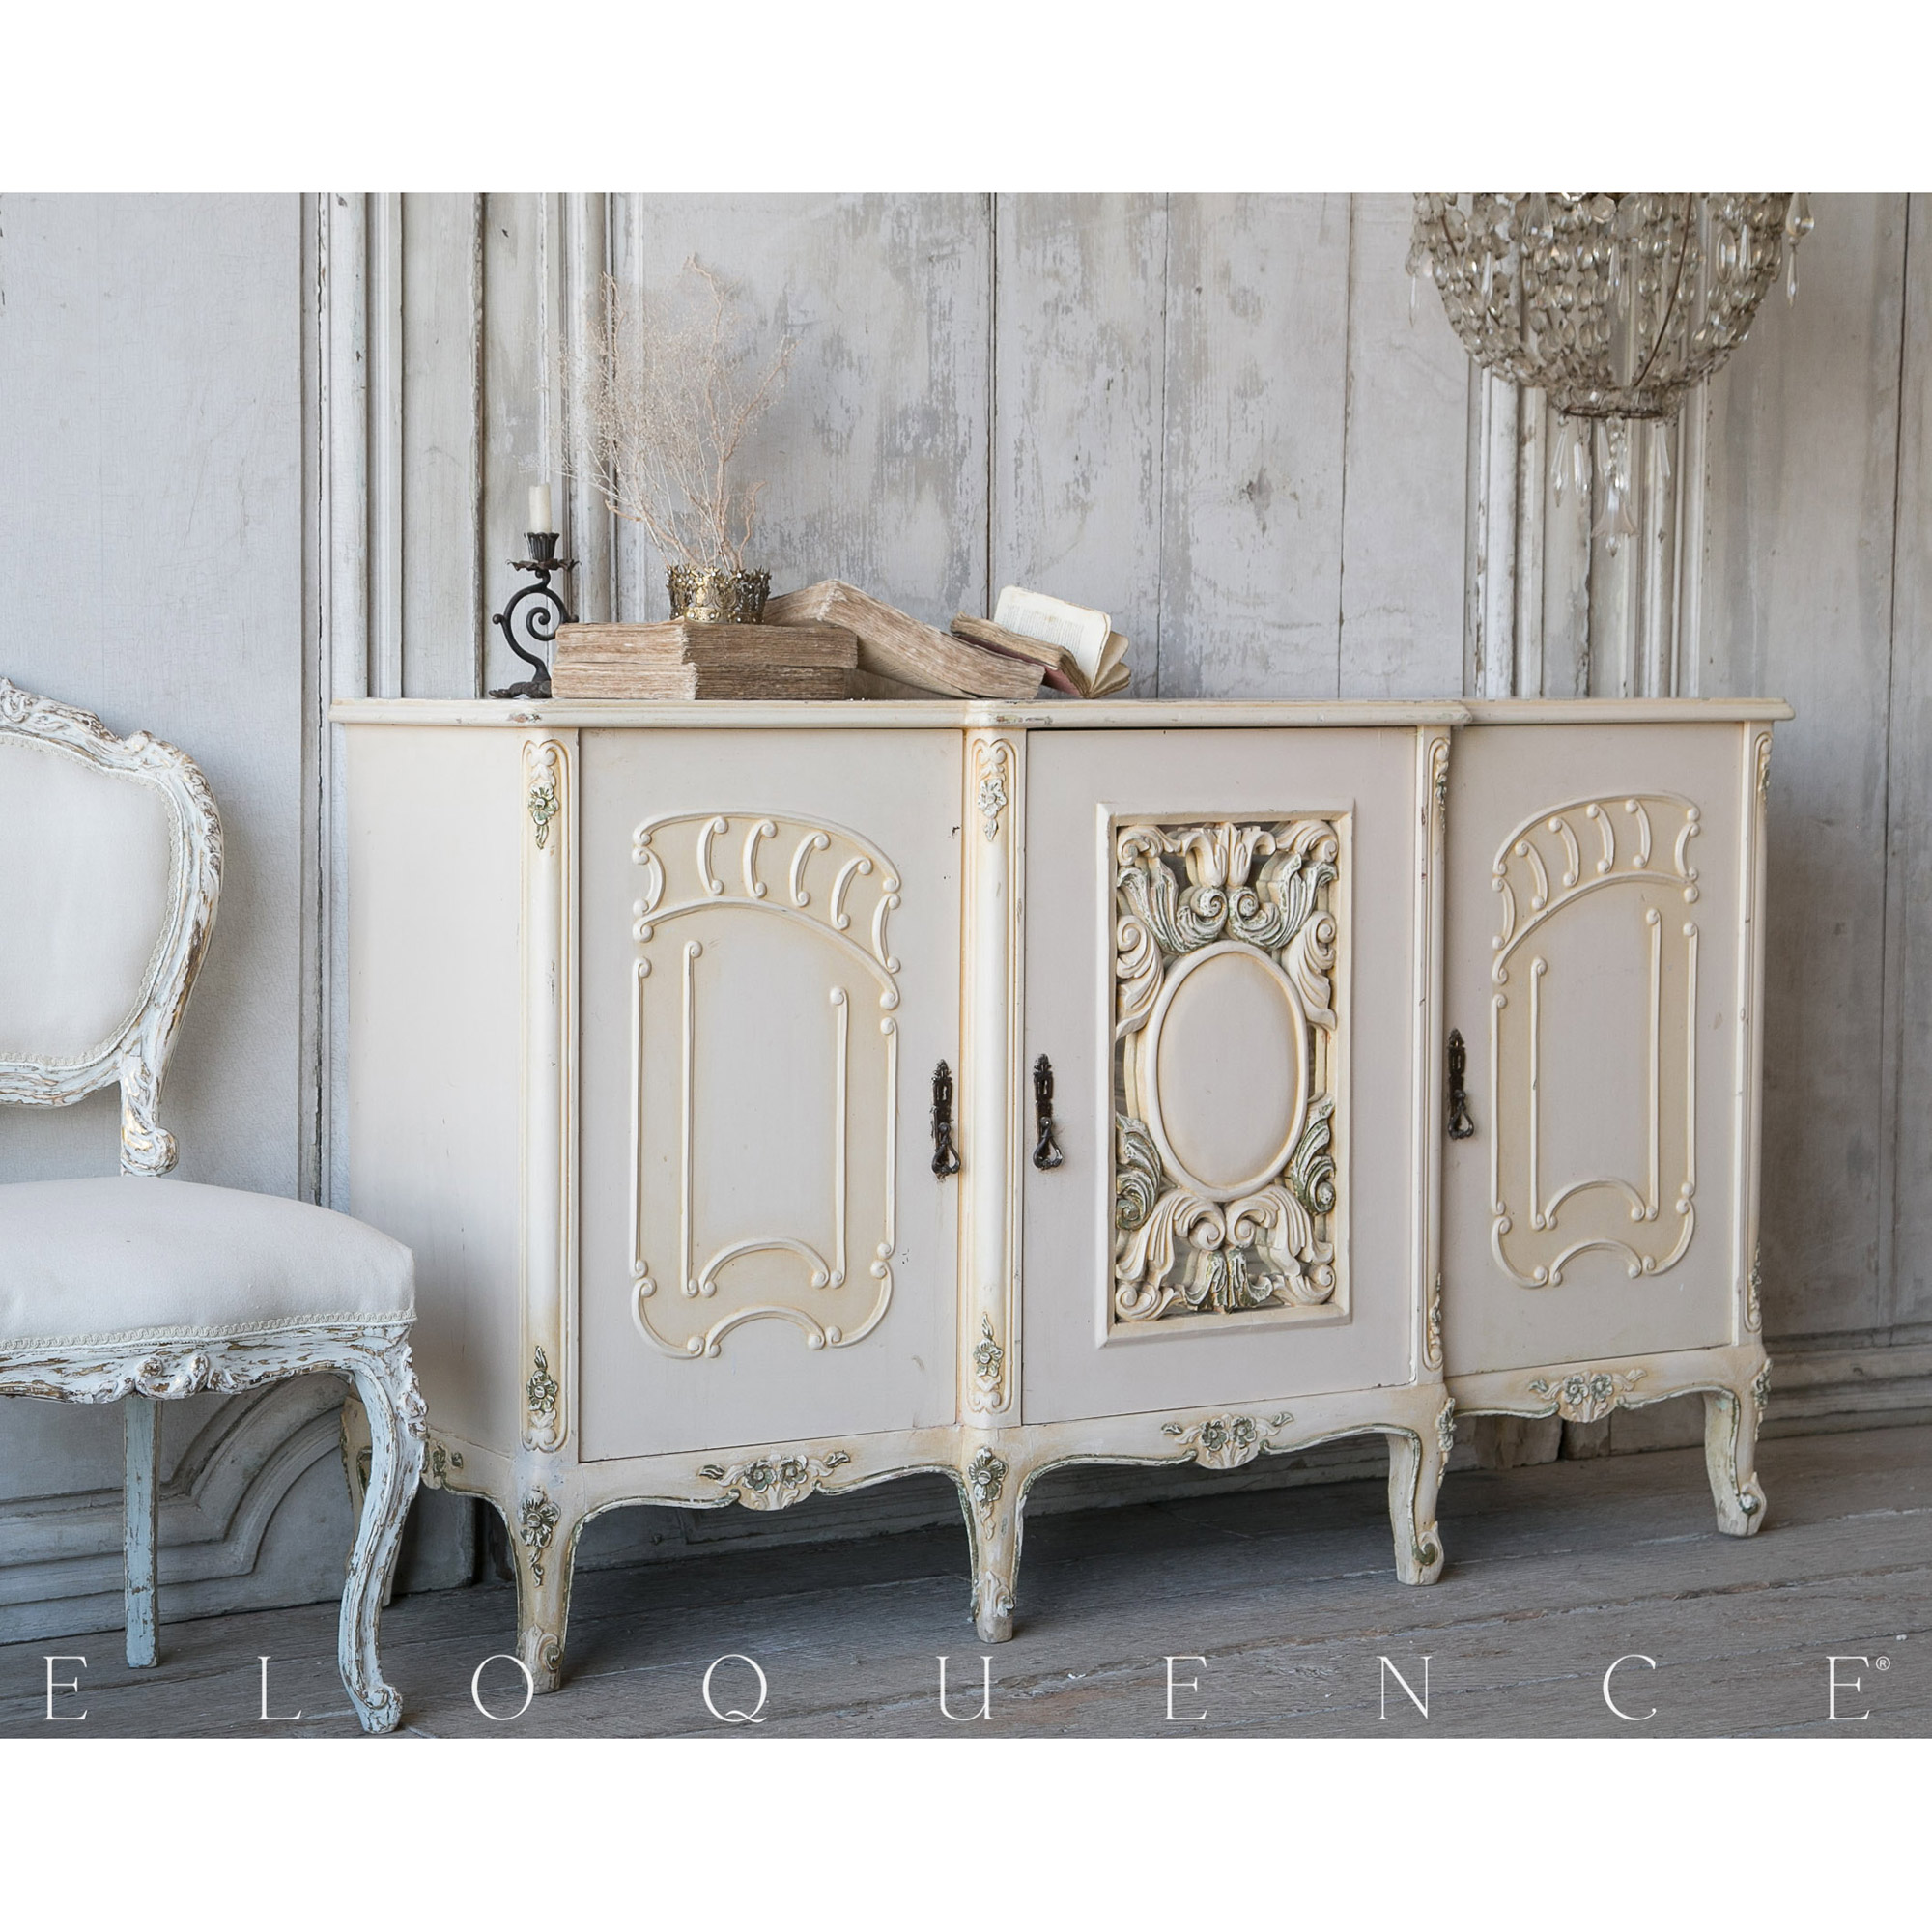 Eloquence® Vintage French Fleur de Lis Cream Sideboard 1940